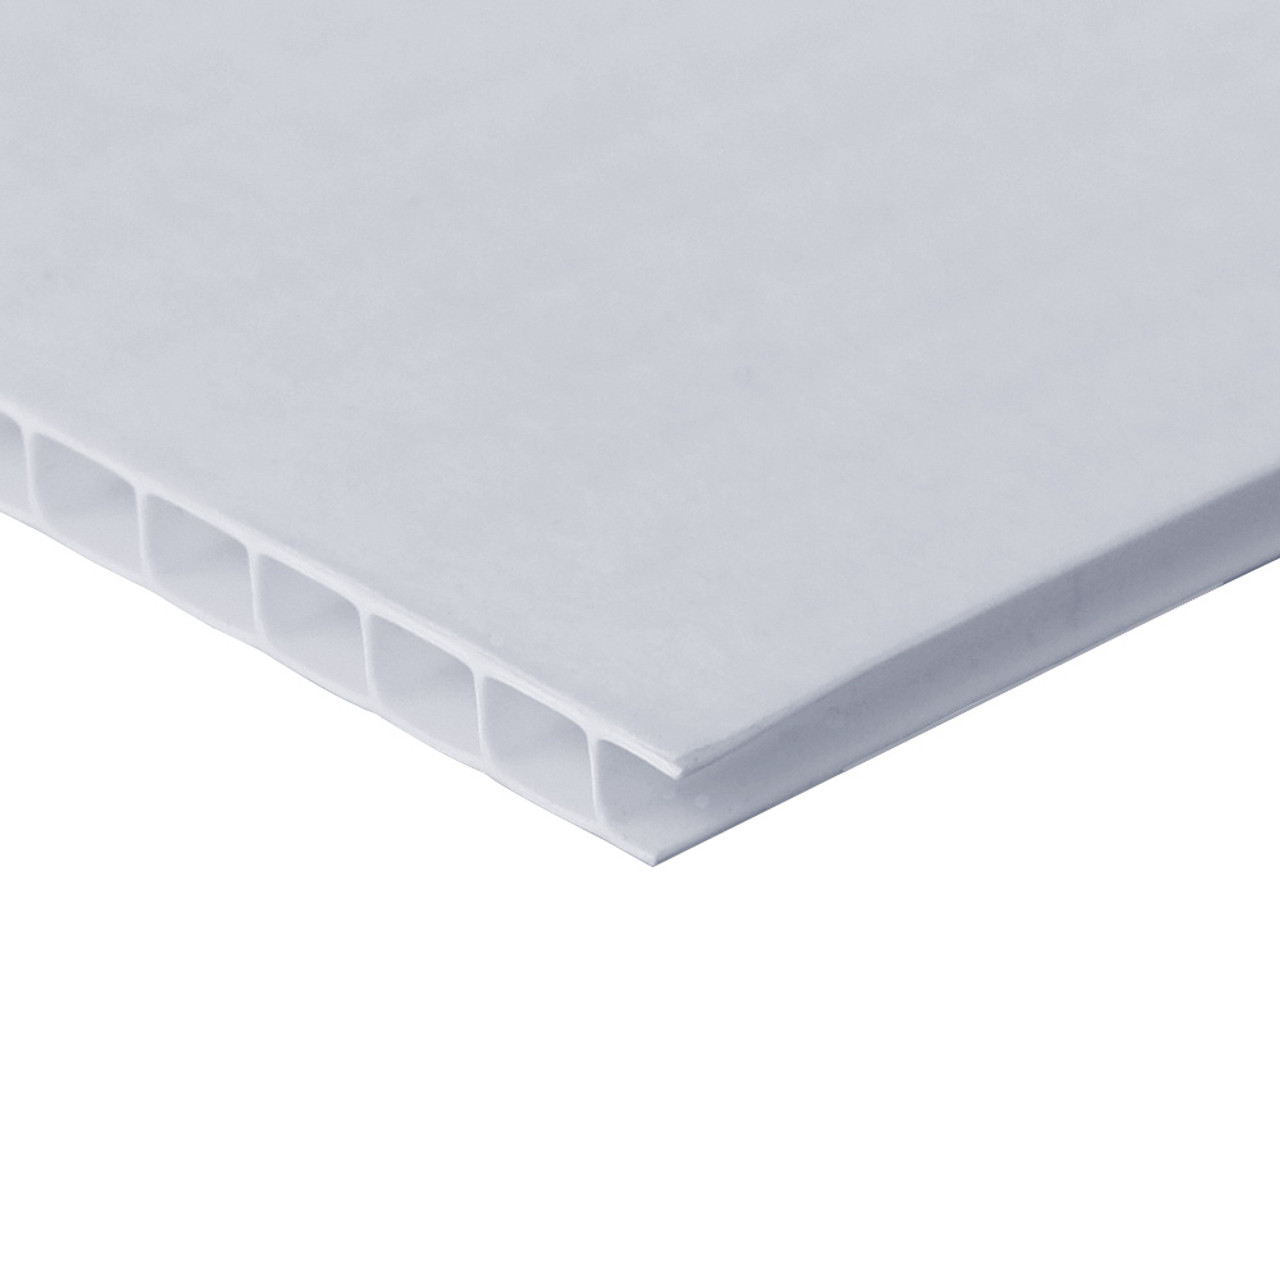 Corrugated Plastic Sheets - Translucent White Color  4'x8'